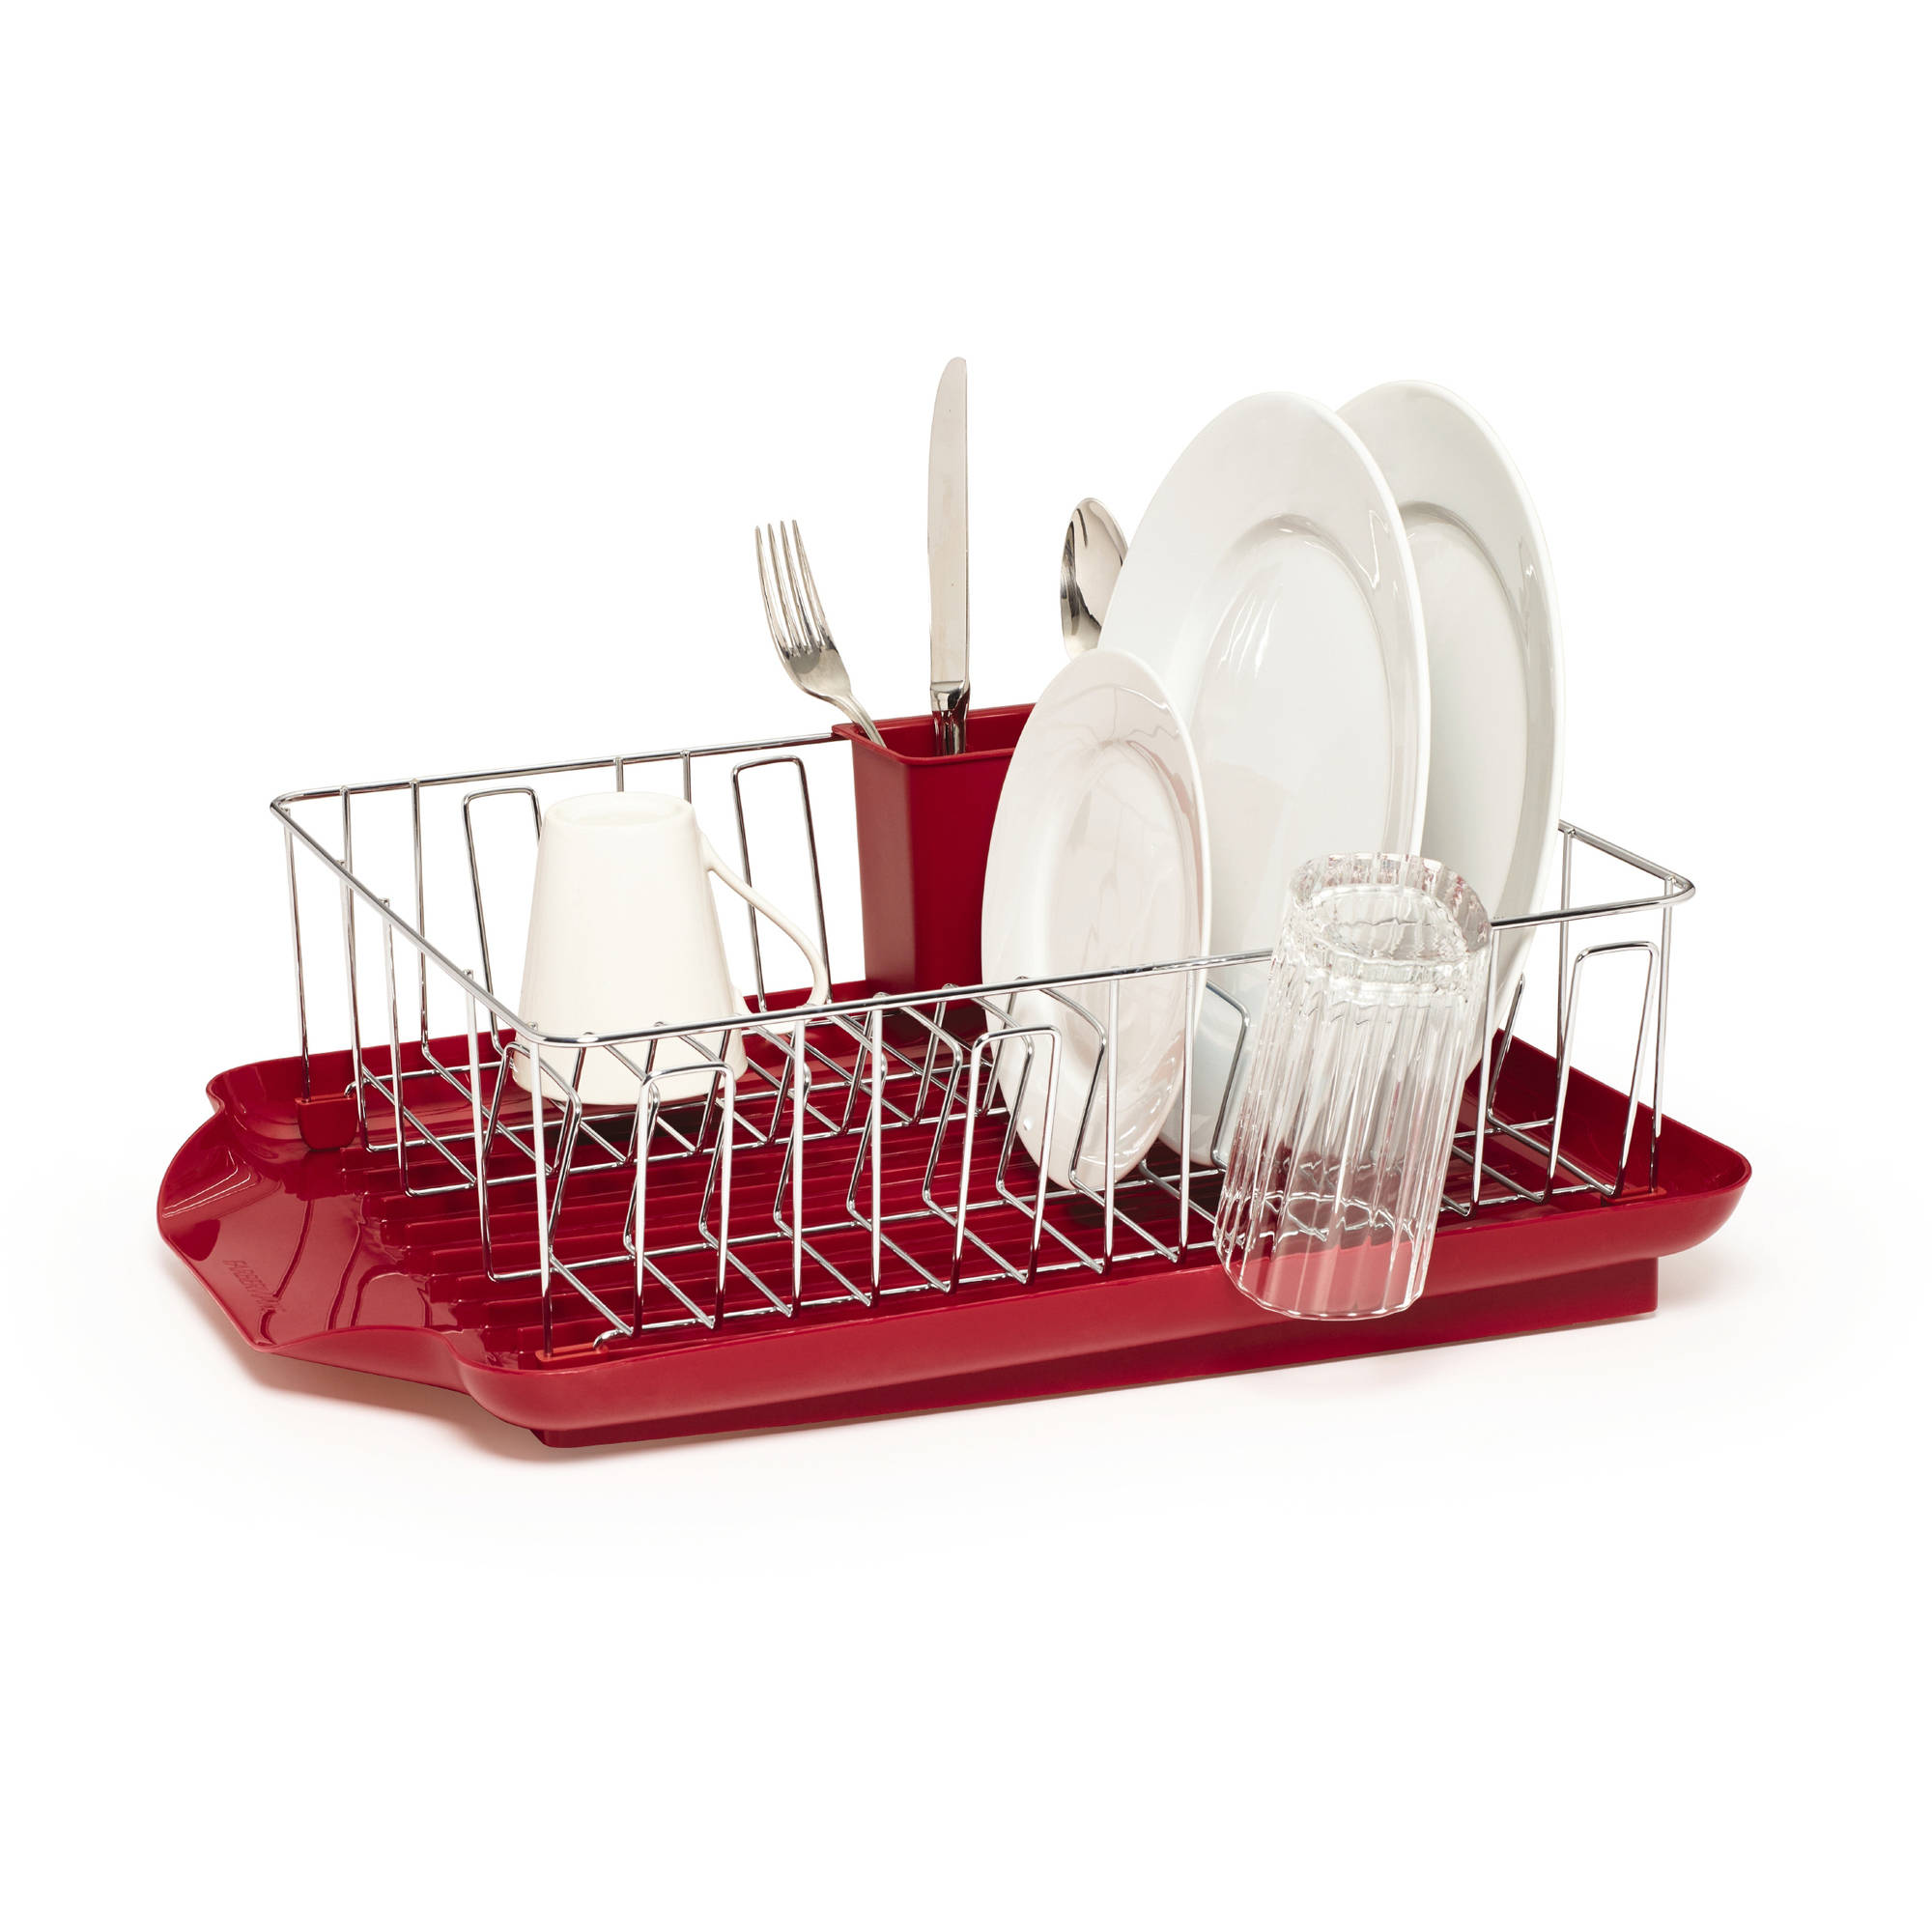 Farberware Professional 3-Piece Dish Rack Set, Red